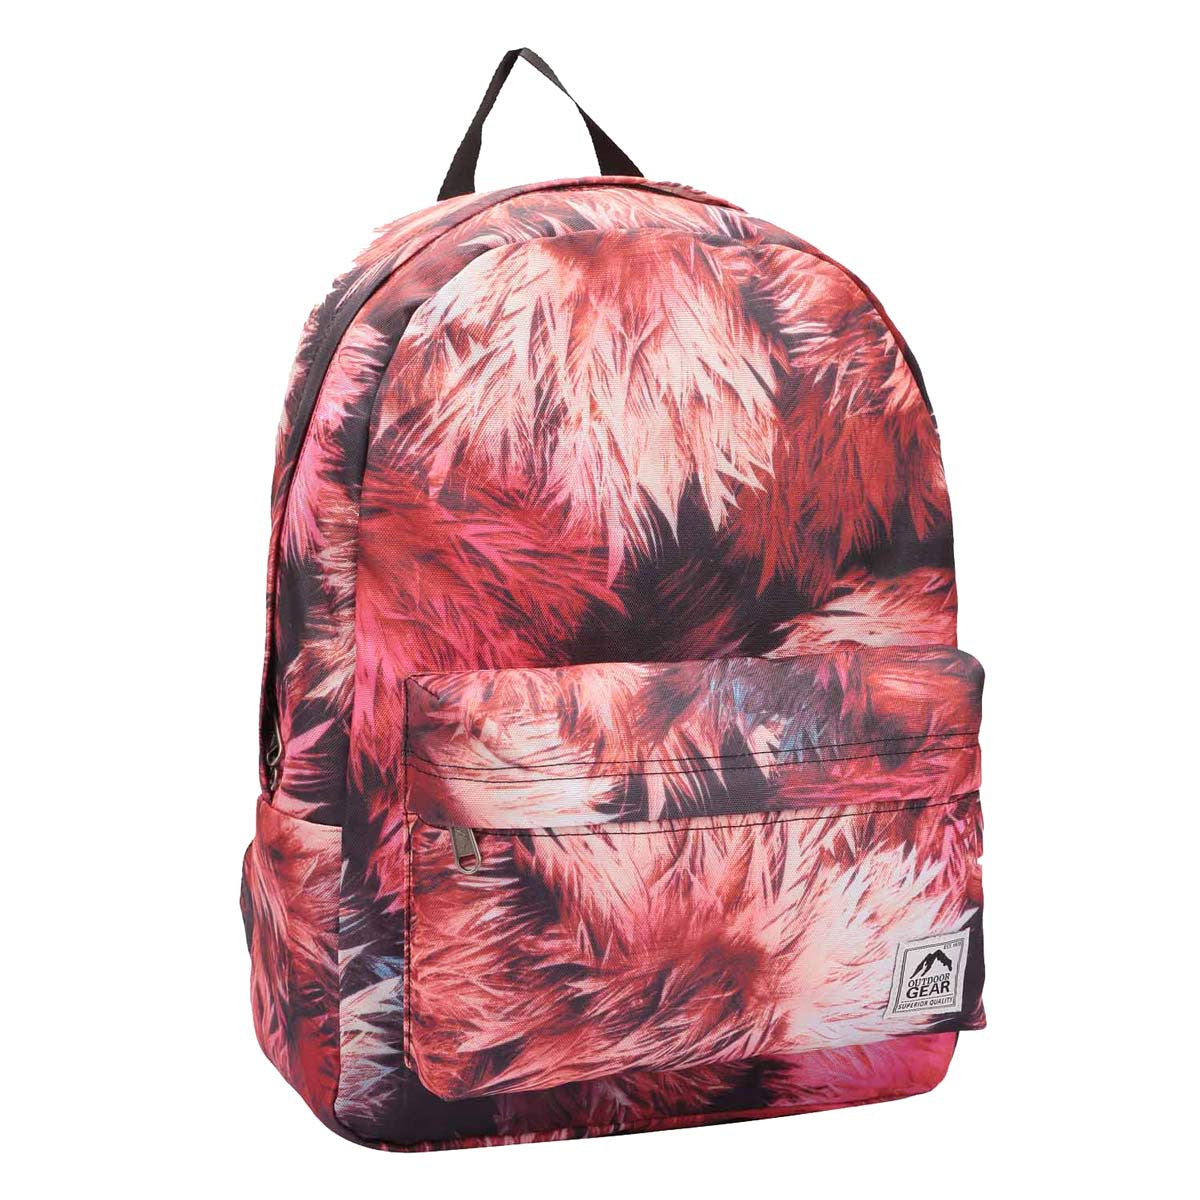 School Backpacks For Kids RL902R